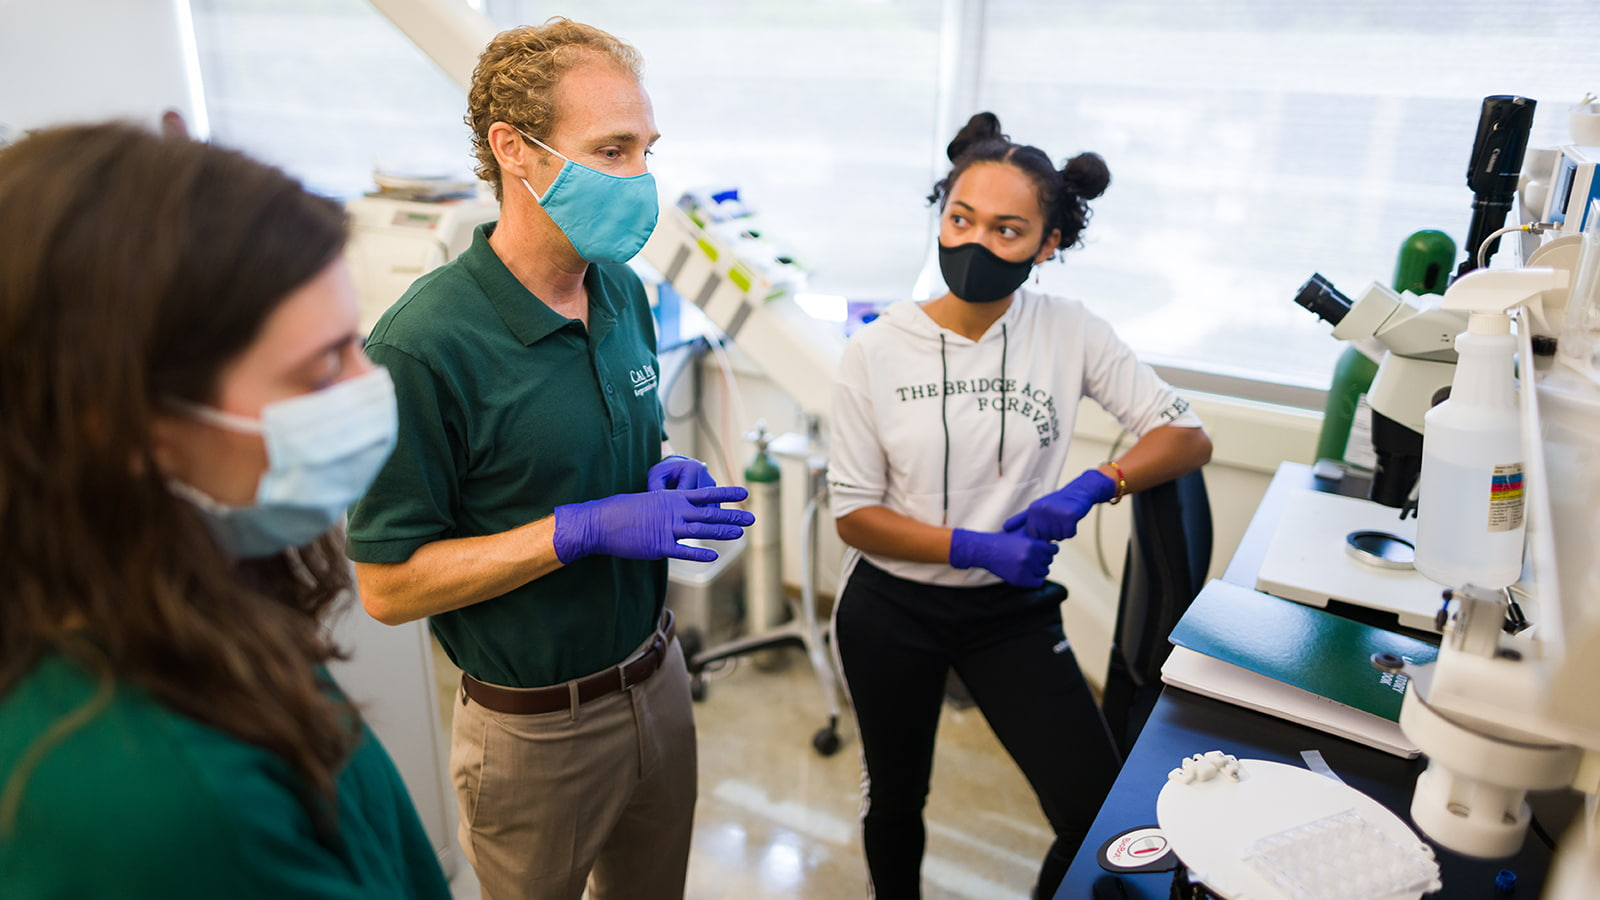 Professors and student wearing masks in the SURP lab at Cal Poly